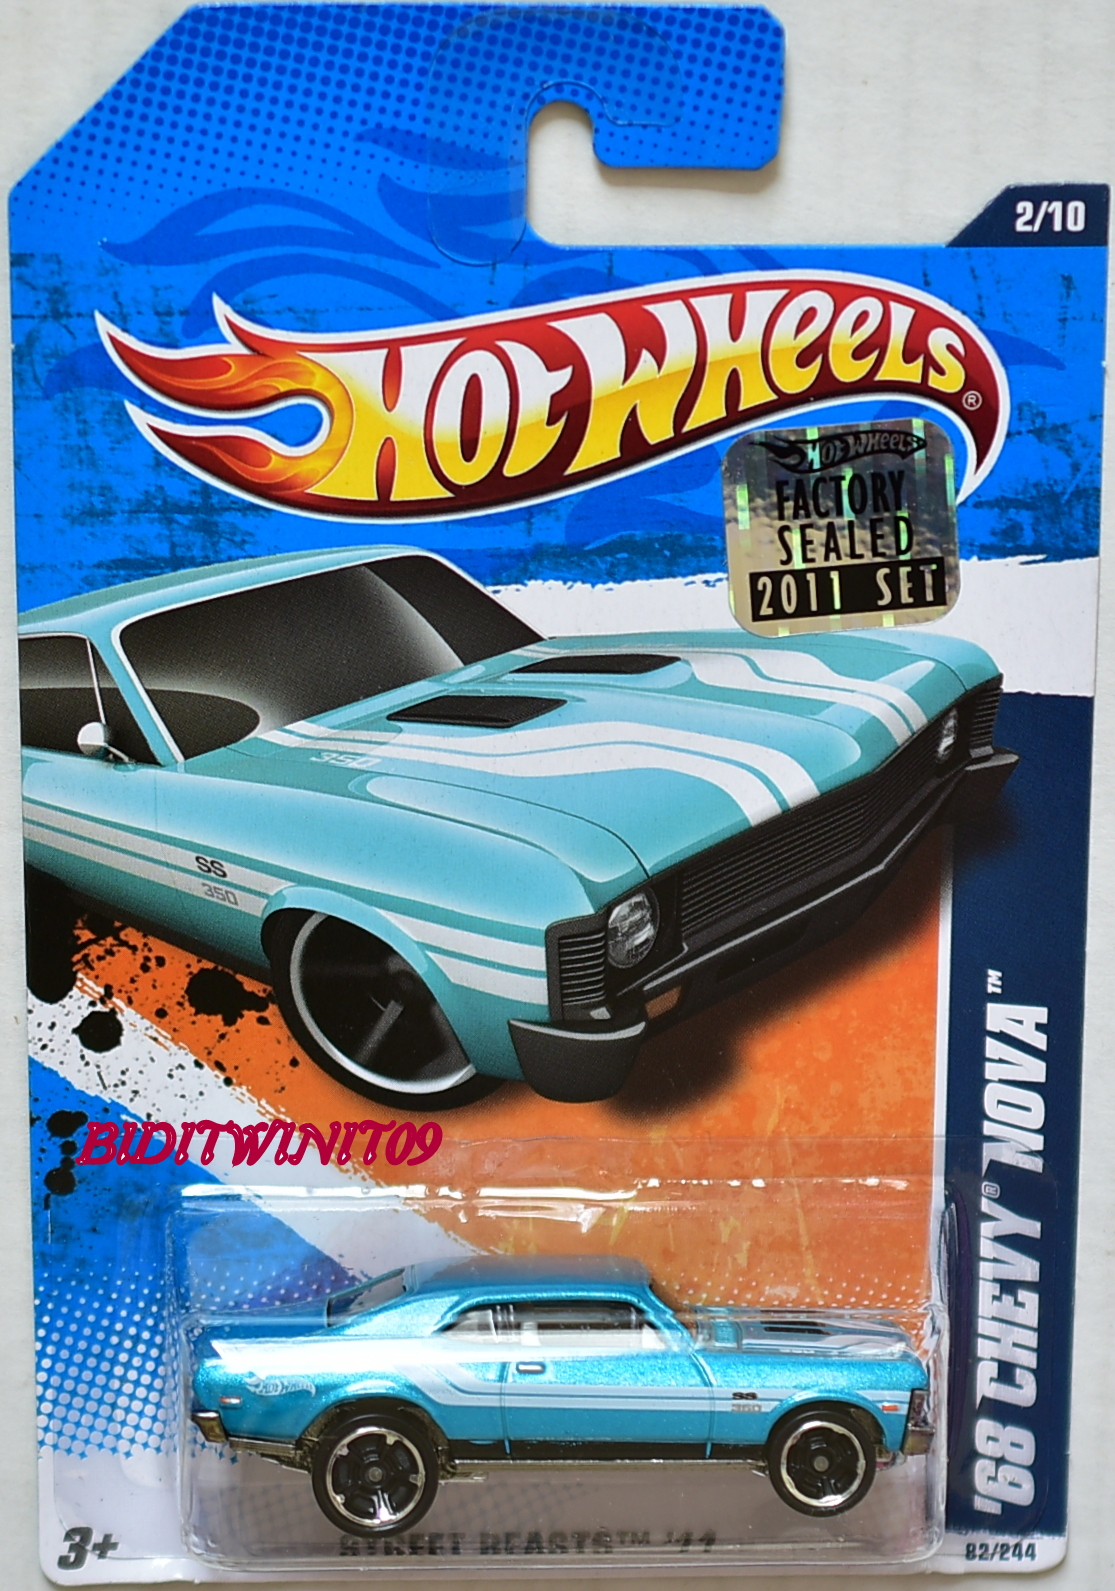 HOT WHEELS 2011 STREET BEASTS '68 CHEVY NOVA #2/10 FACTORY SEALED E+